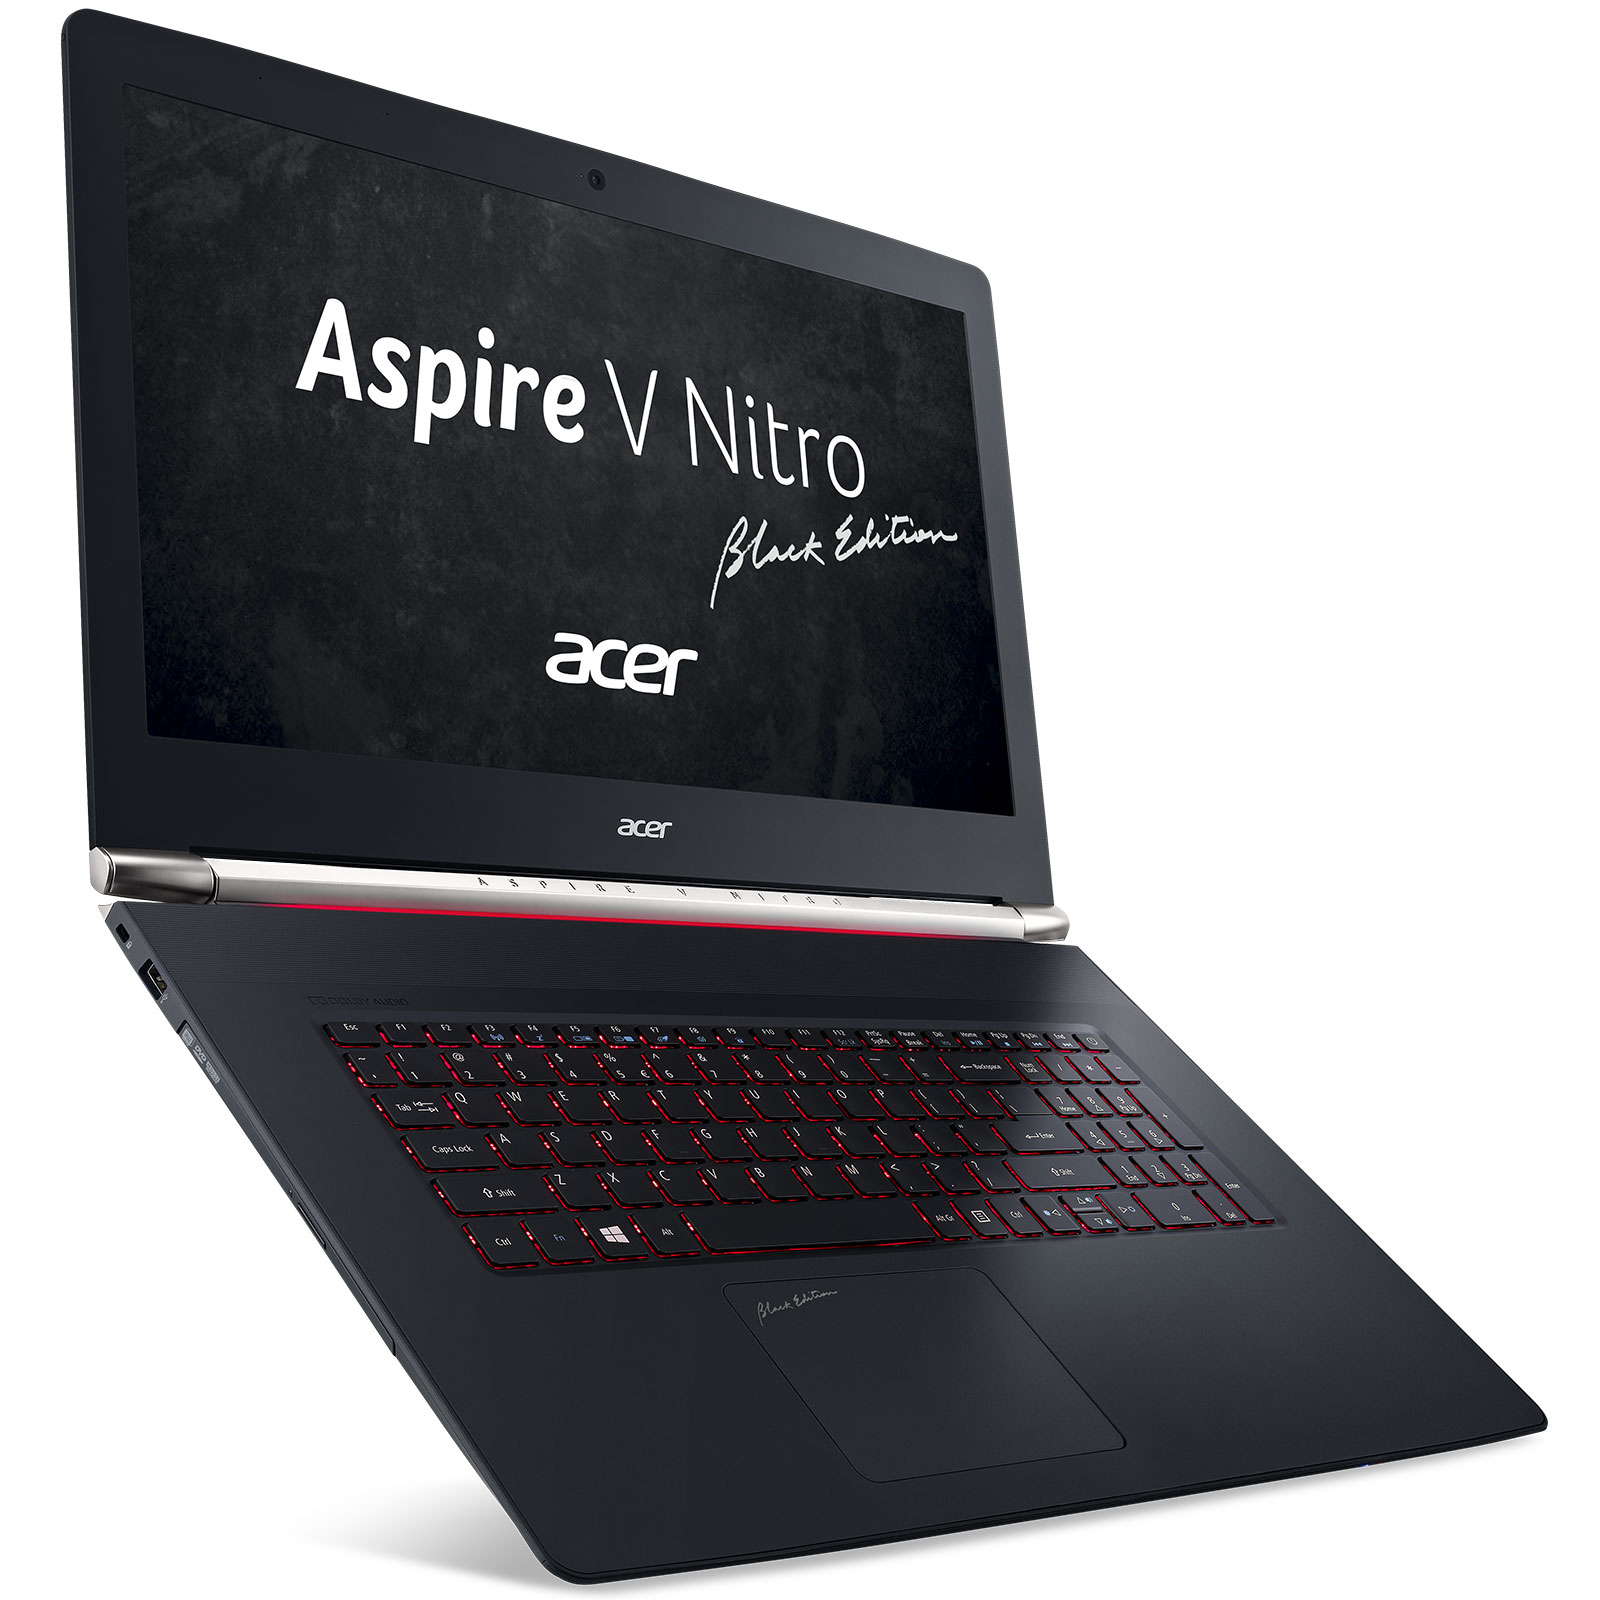 "PC portable Acer Aspire V Nitro VN7-792G-51LP Black Edition Intel Core i5-6300HQ 8 Go 1 To 17.3"" LED Full HD NVIDIA GeForce GTX 960M Wi-Fi AC/Bluetooth Webcam Windows 10 Famille 64 bits"